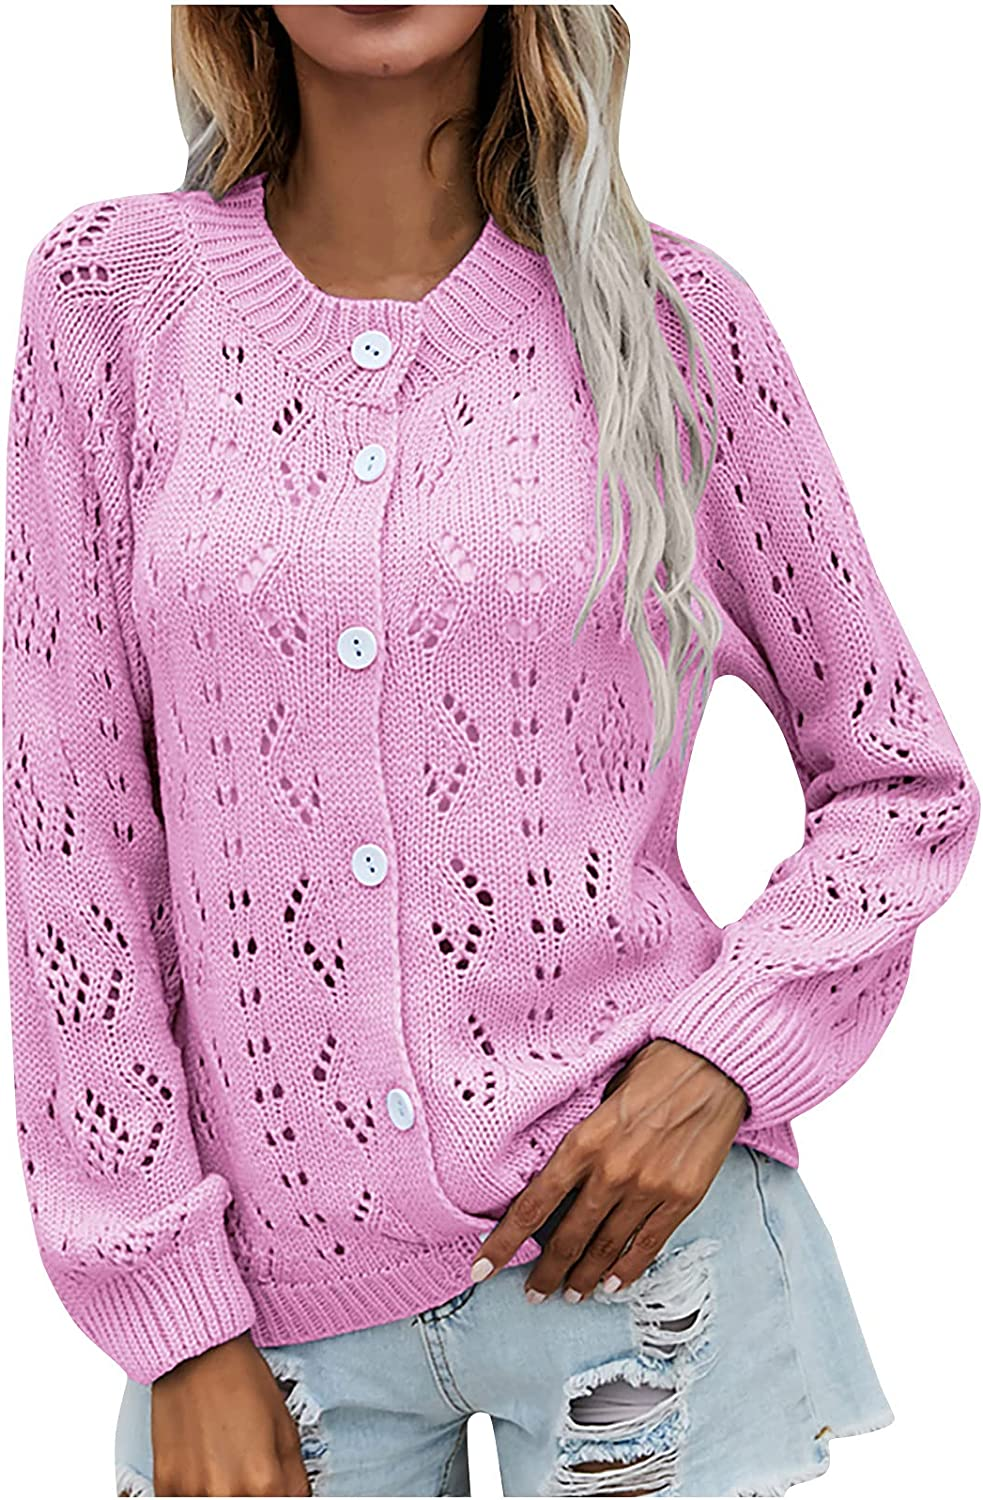 Hollow Button Knitted Sweater Cardigan for Women's Fashion Round Neck Solid Color Thin Coat Autumn Winter Thin Tops